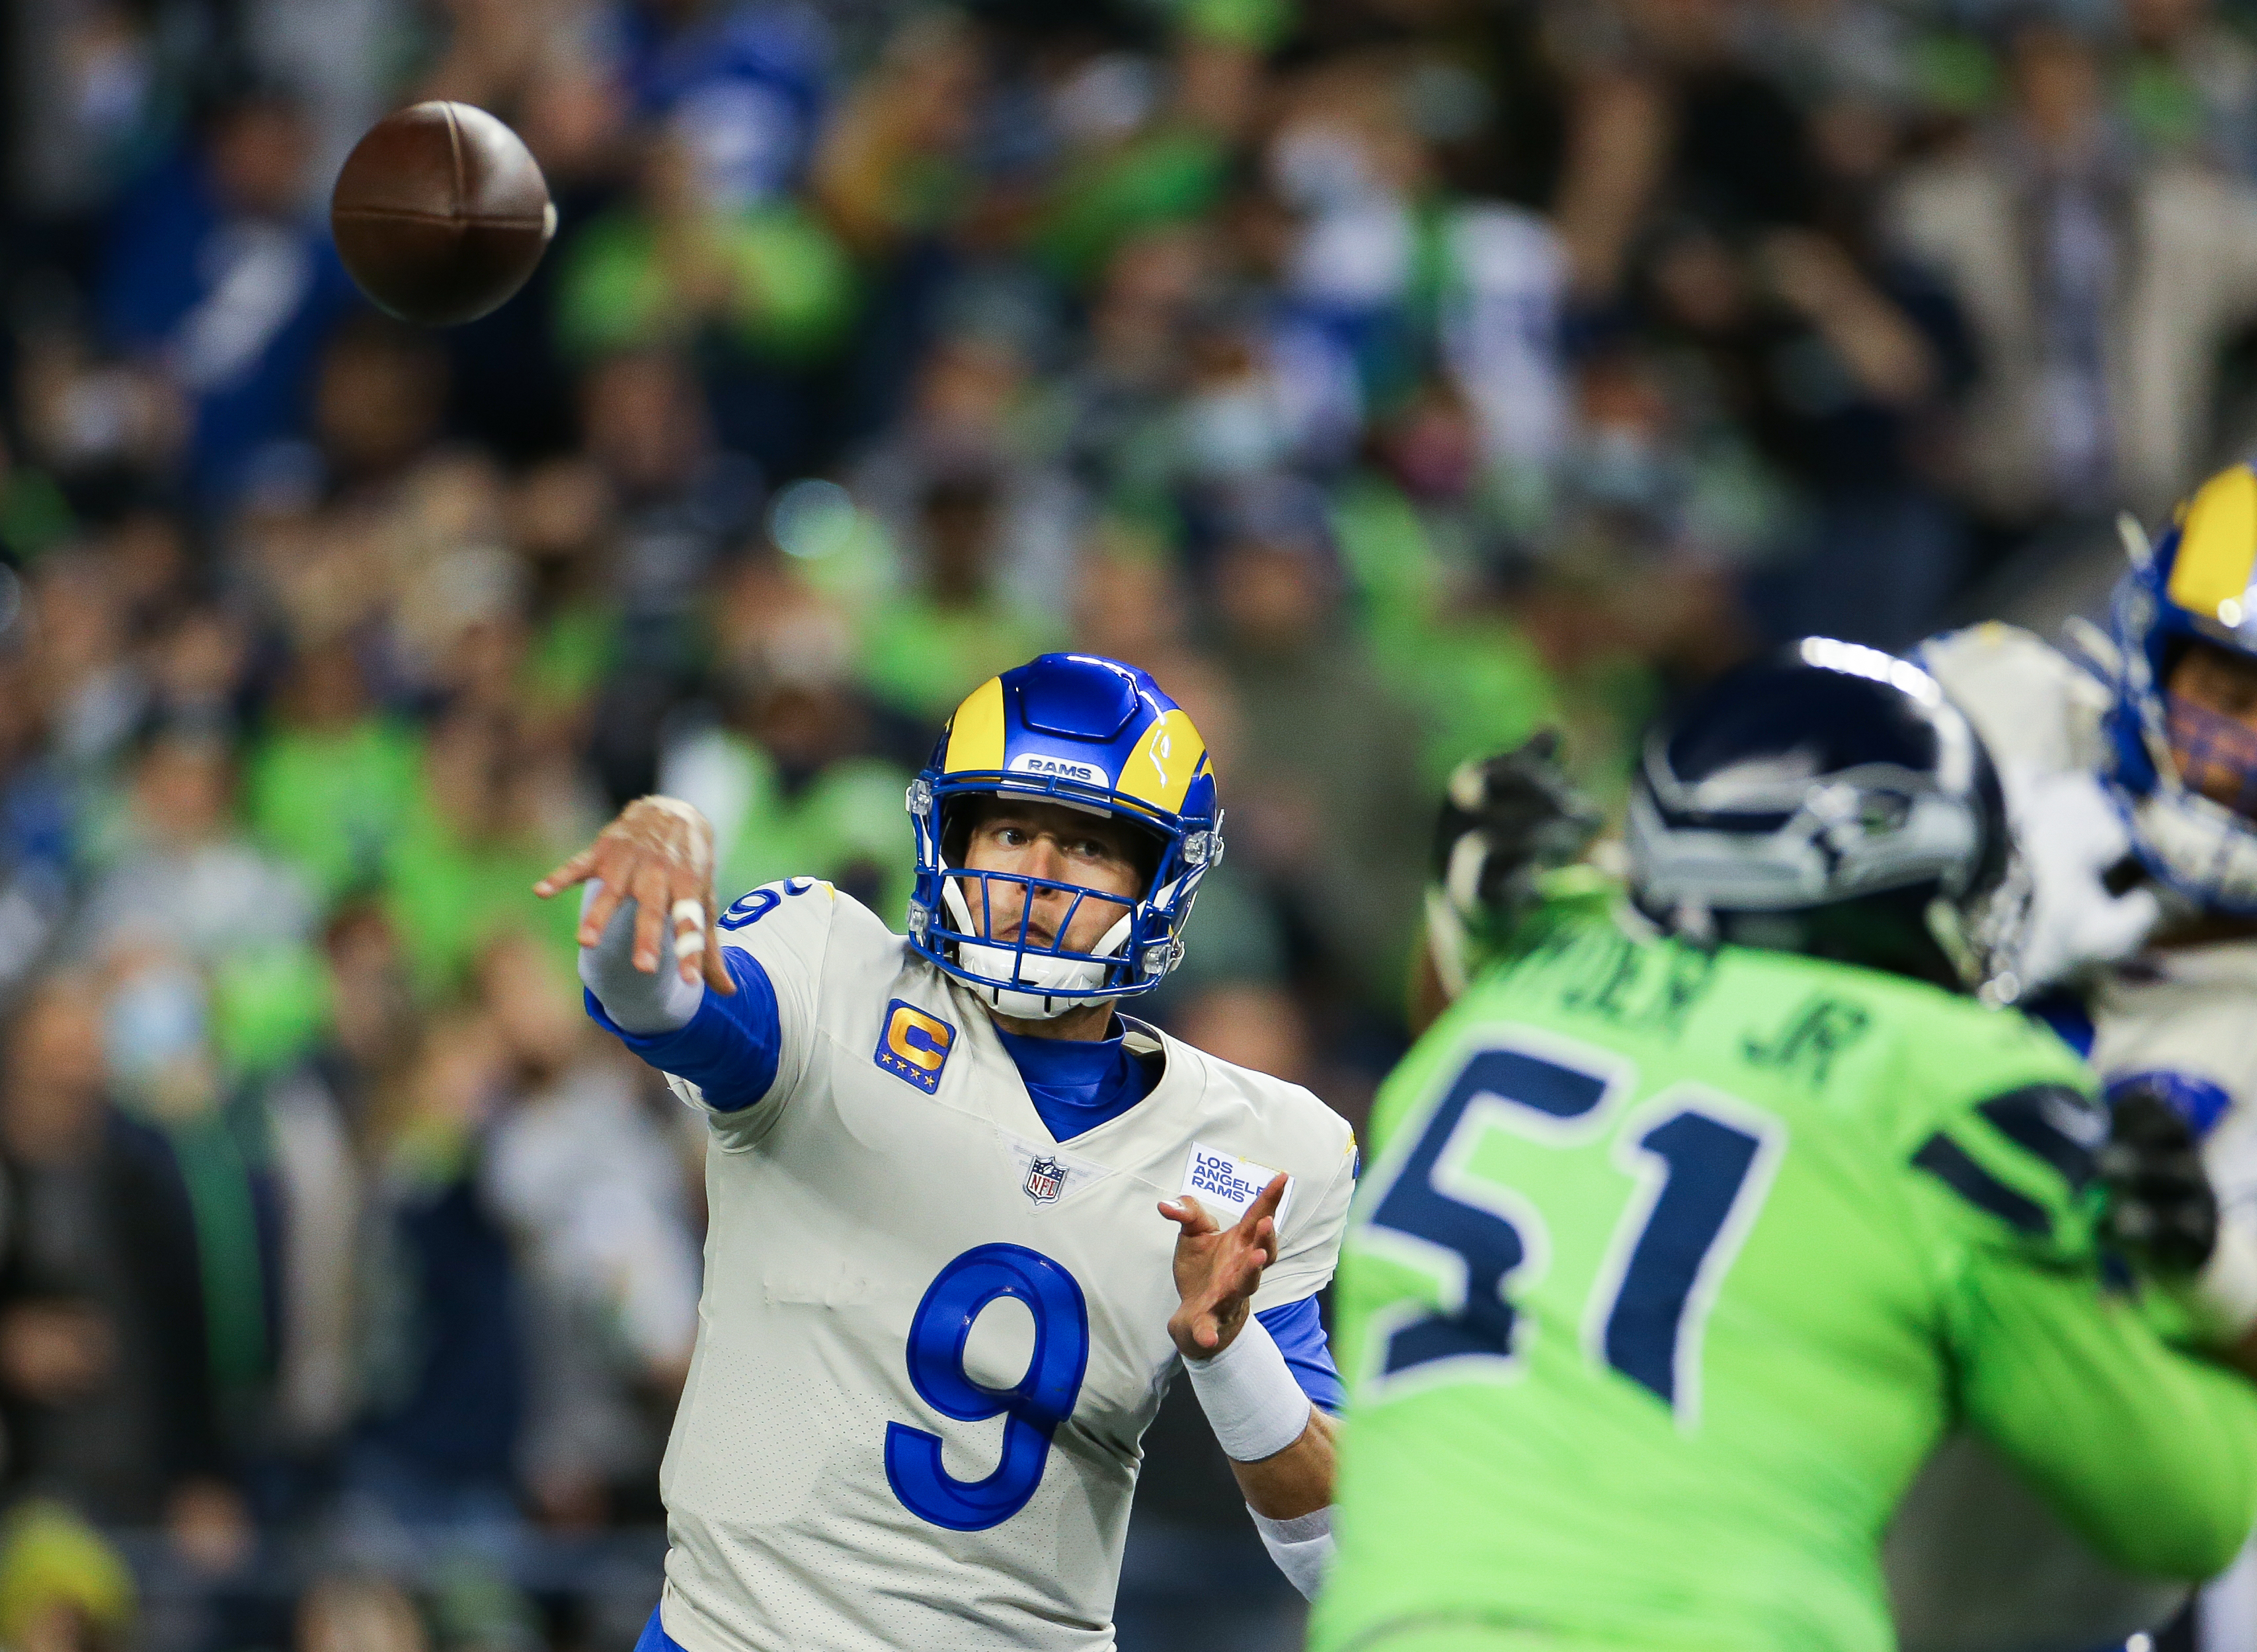 Quarterback Matthew Stafford #9 of the Los Angeles Rams throws in the second half against the Seattle Seahawks at Lumen Field on October 7, 2021 in Seattle, Washington.